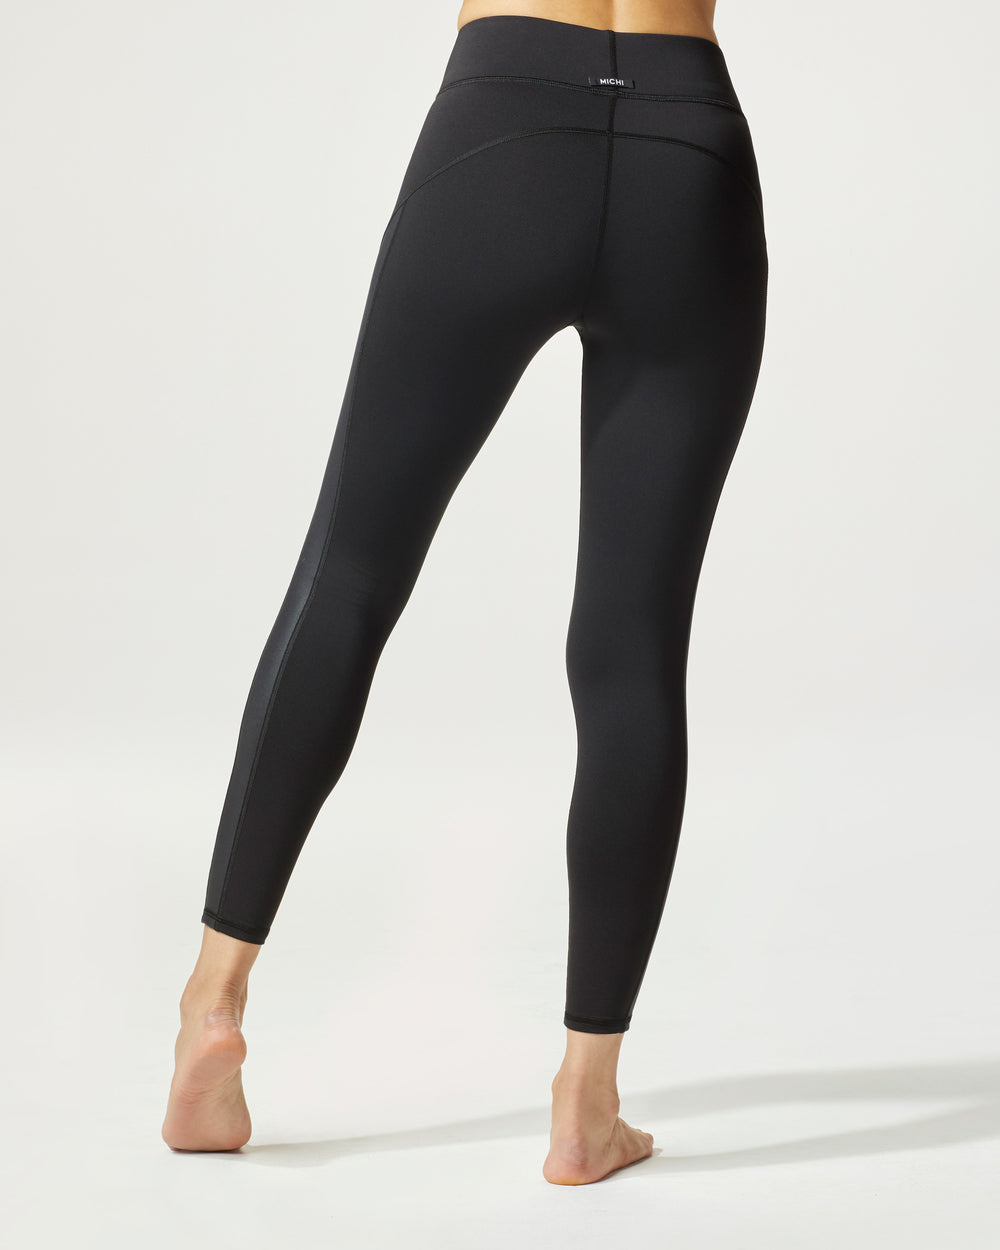 Stardust Shine Legging - Black